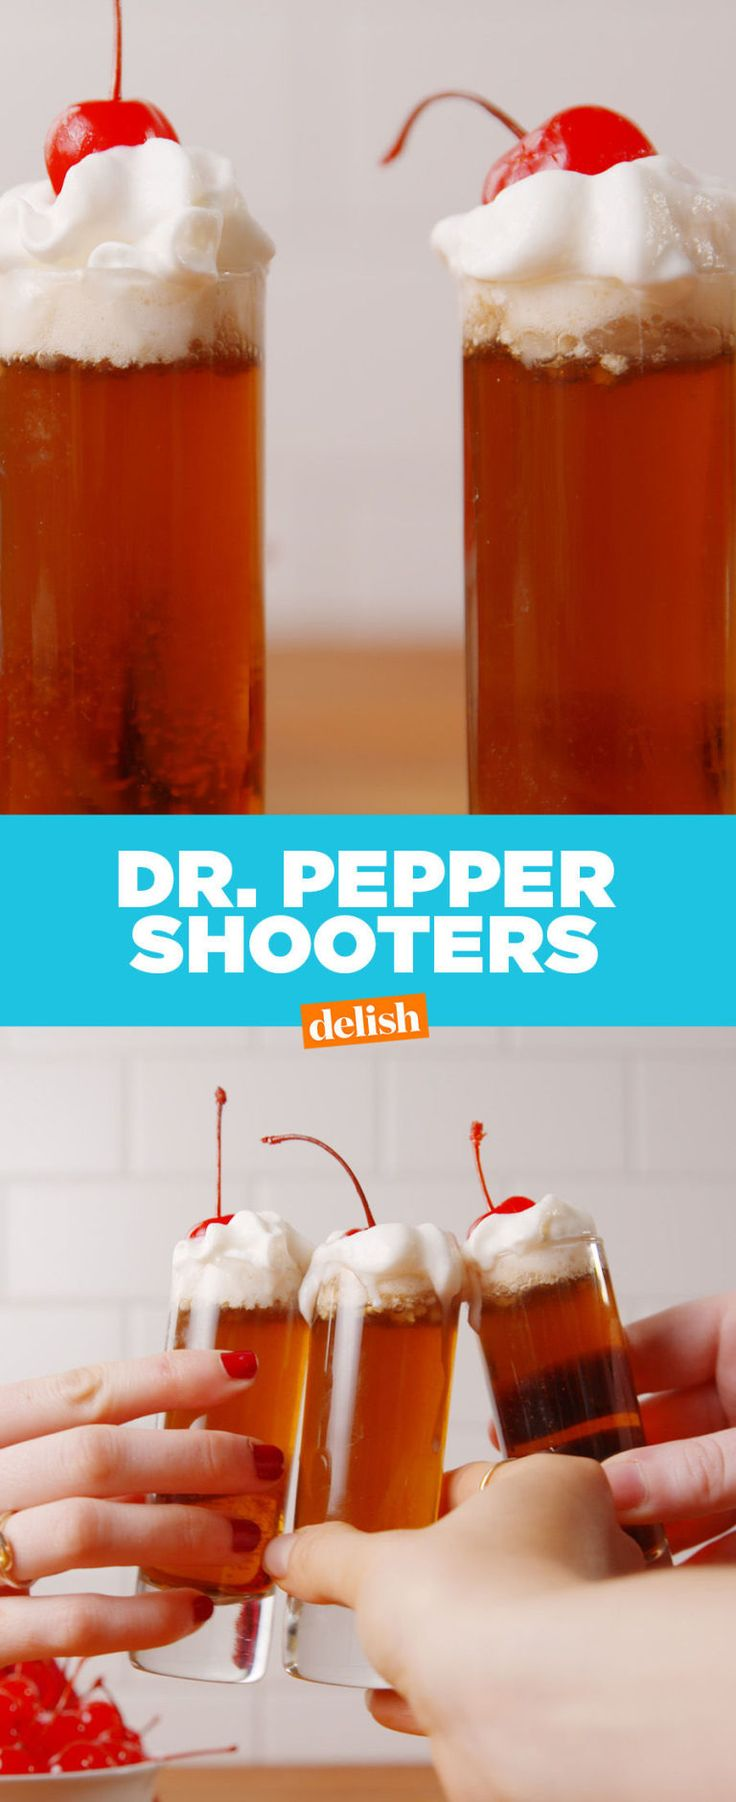 These Dr. Pepper Shooters Go Down A Little Too Easy